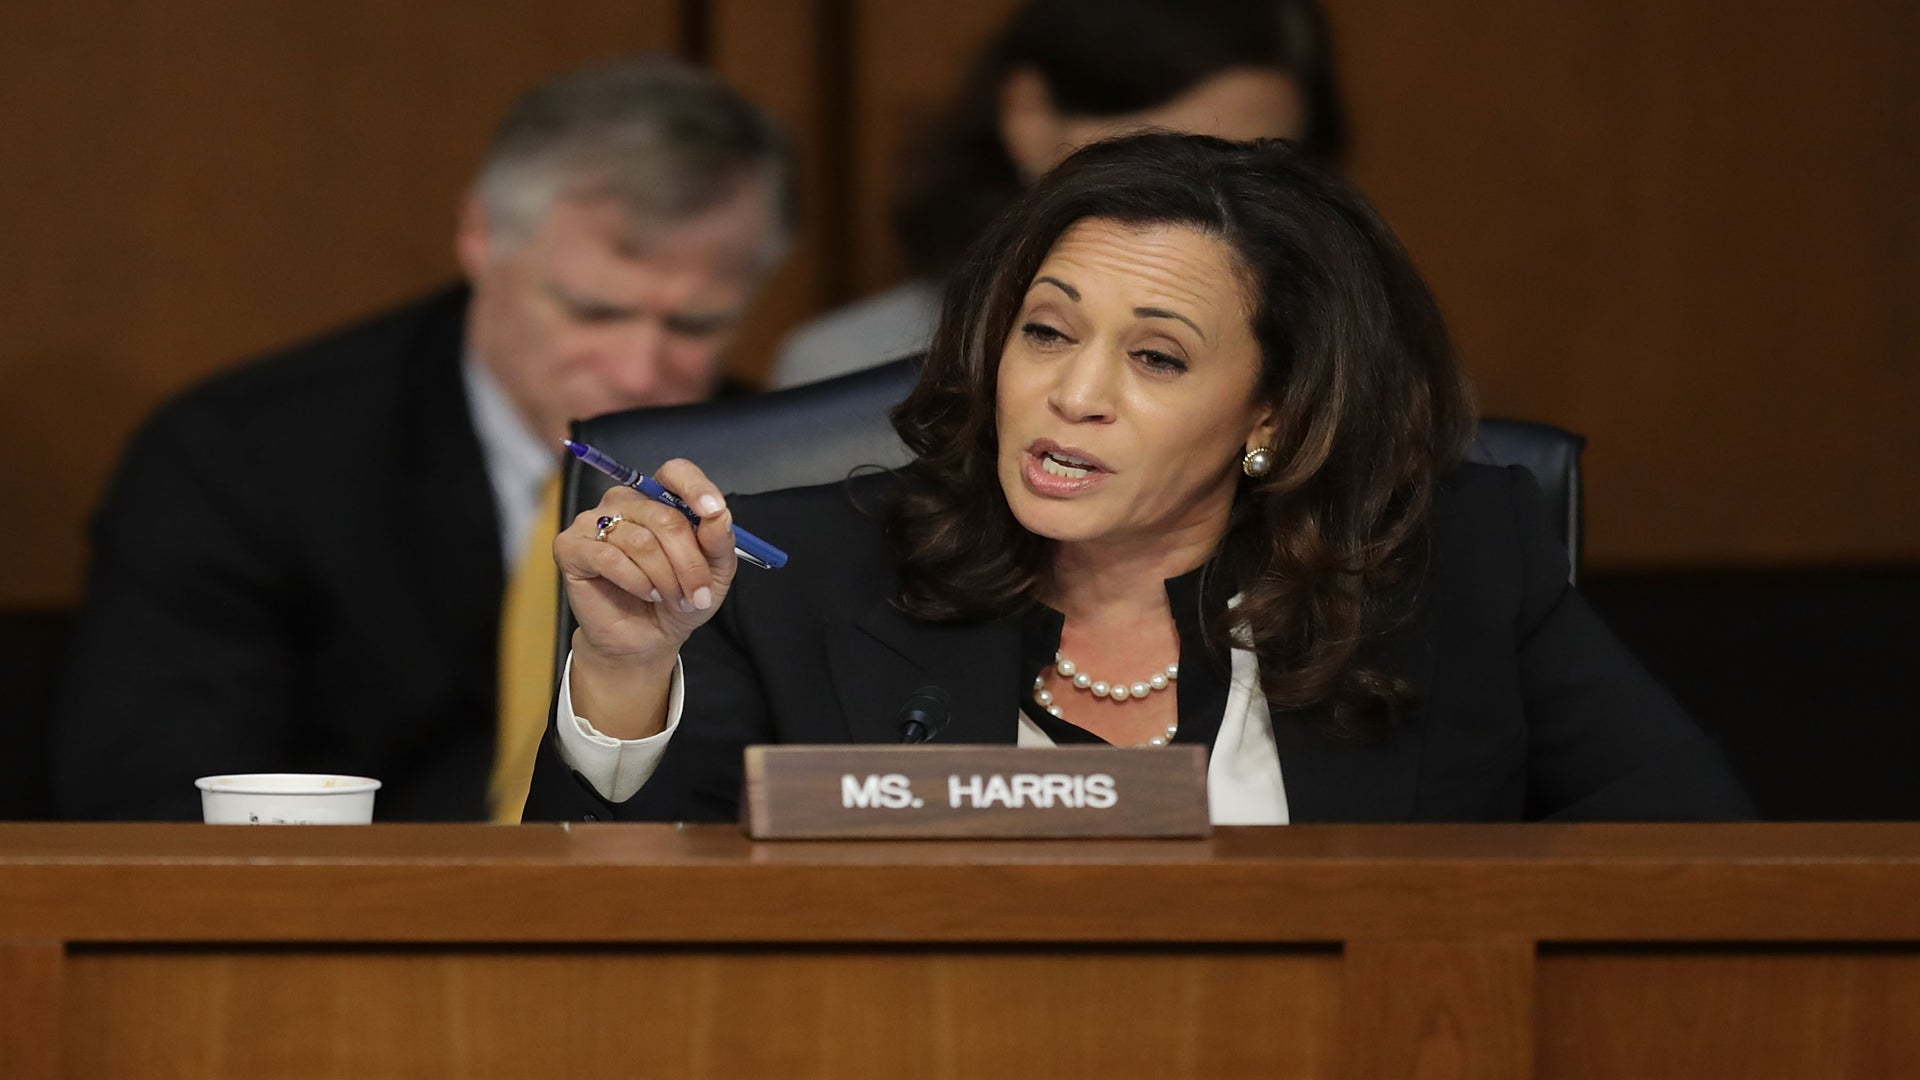 Sen. Kamala Harris Says Stephon Clark's Life 'Should Not Have Been Lost'